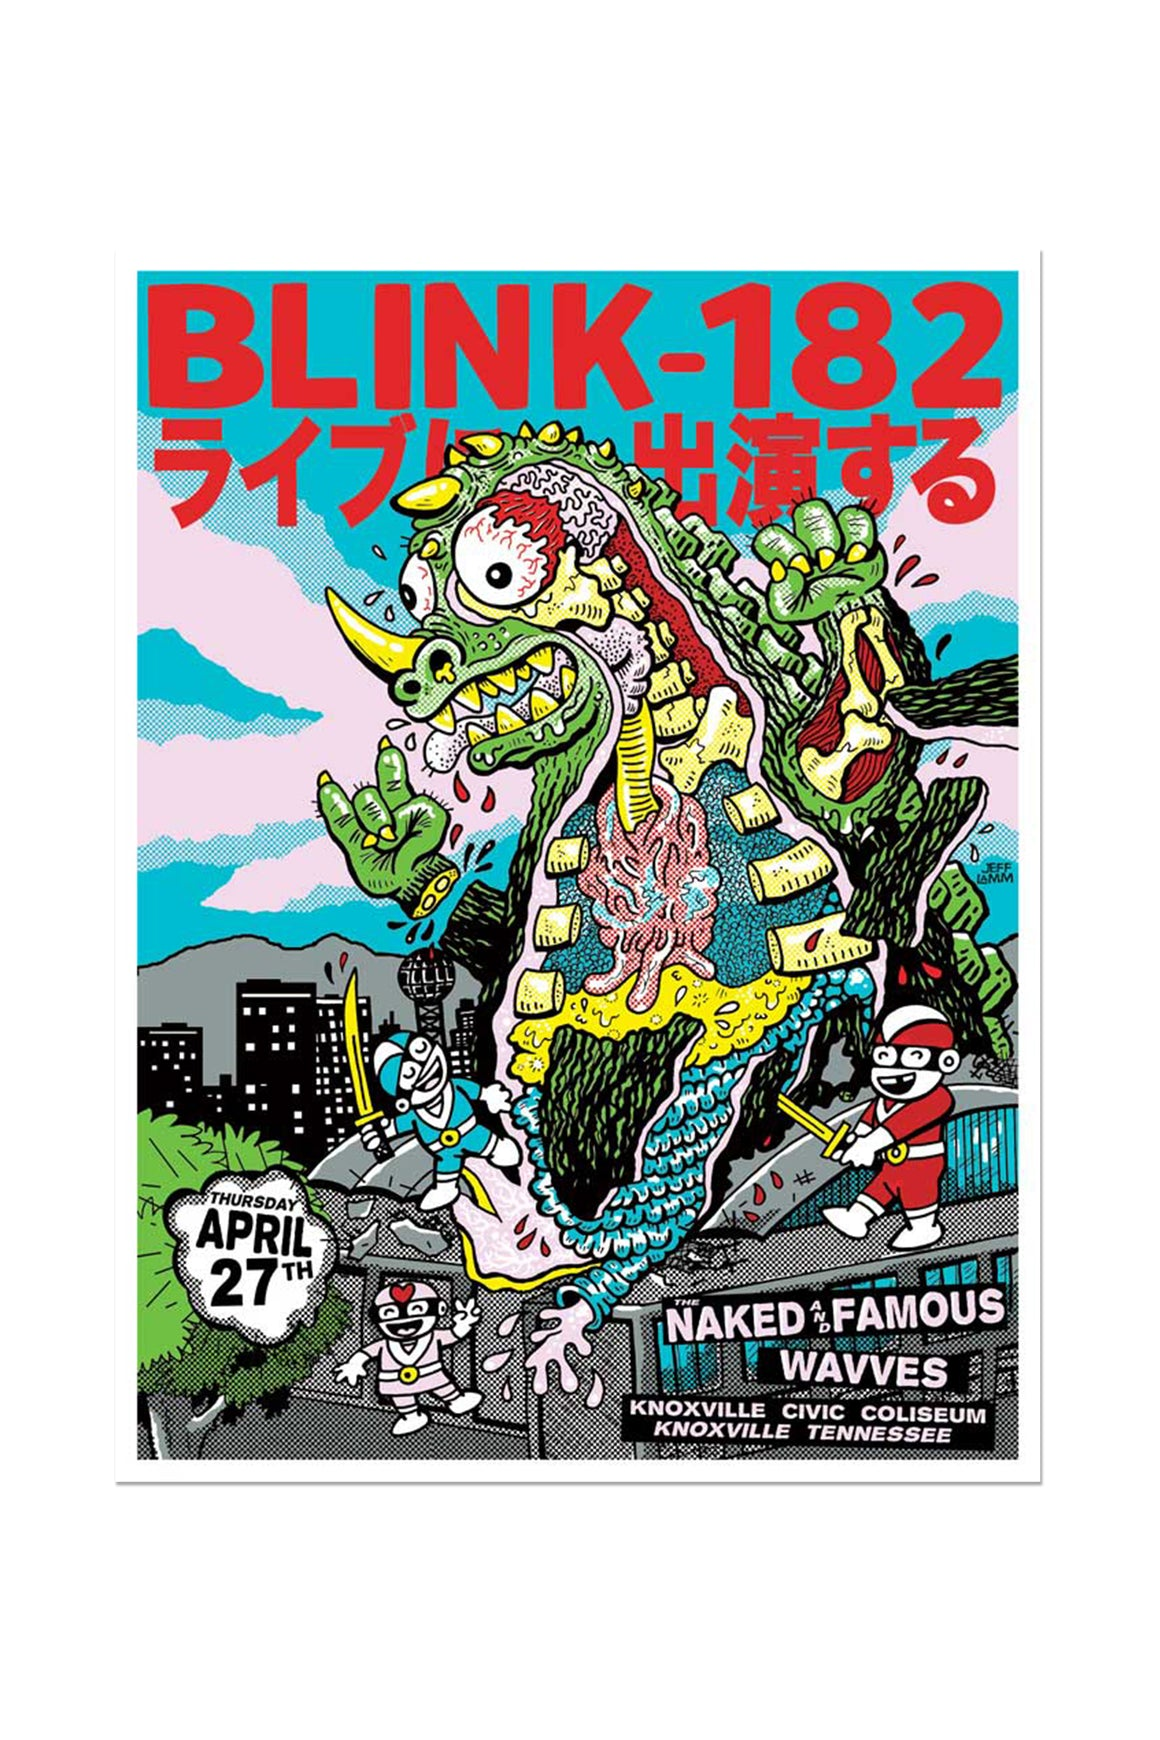 blink-182 4/27/2017 Knoxville, TN Event Poster